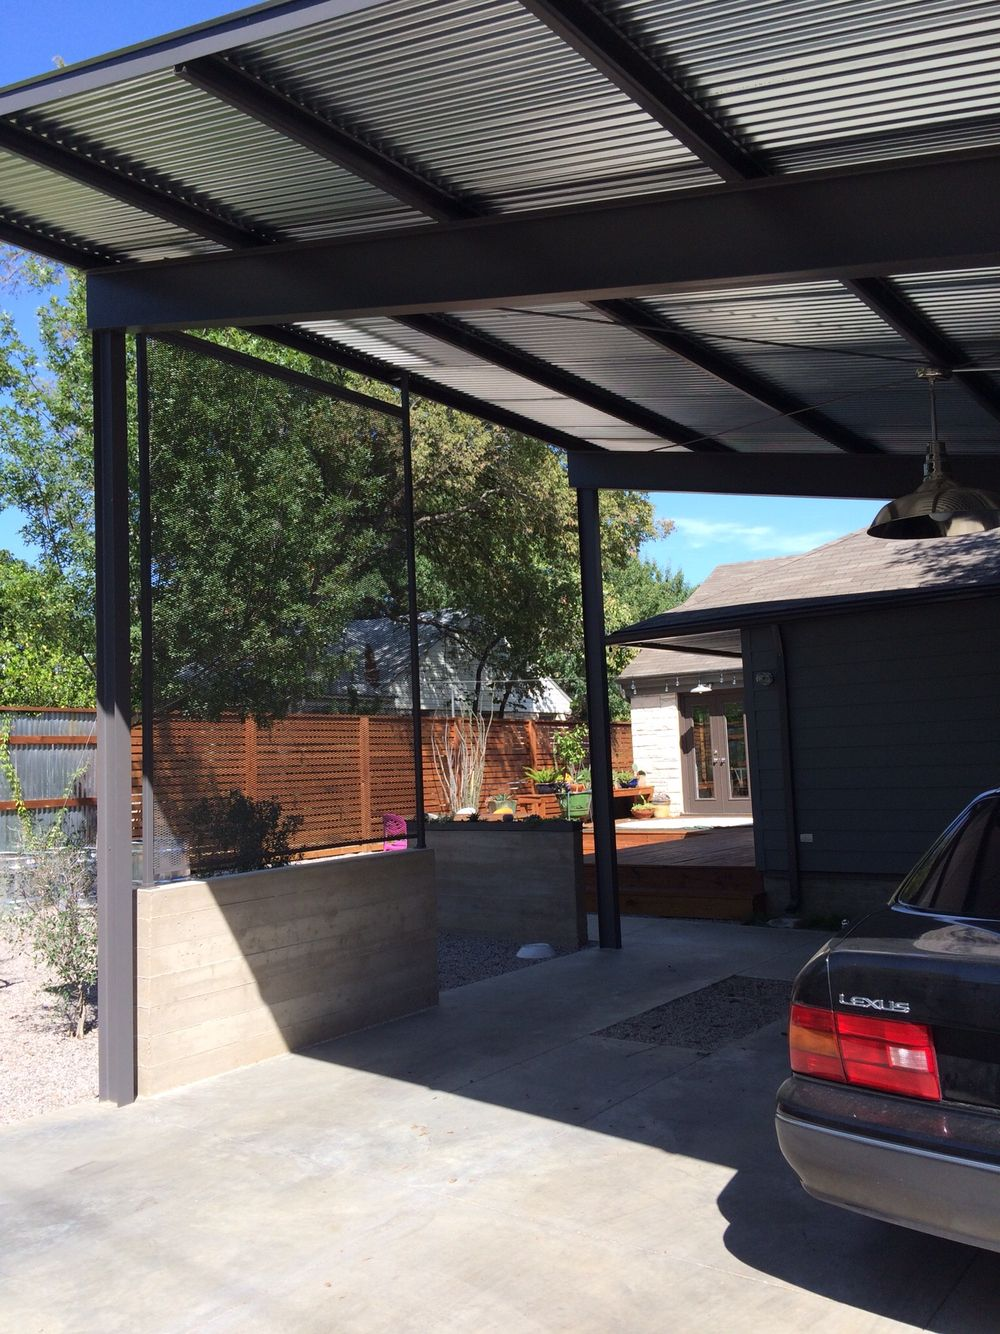 Modern Steel Car Port Designed By Jessica Chiles Dallas Tx Built By Webster Street Inc Dallas Tx Car Porch Design Carport Designs Carport